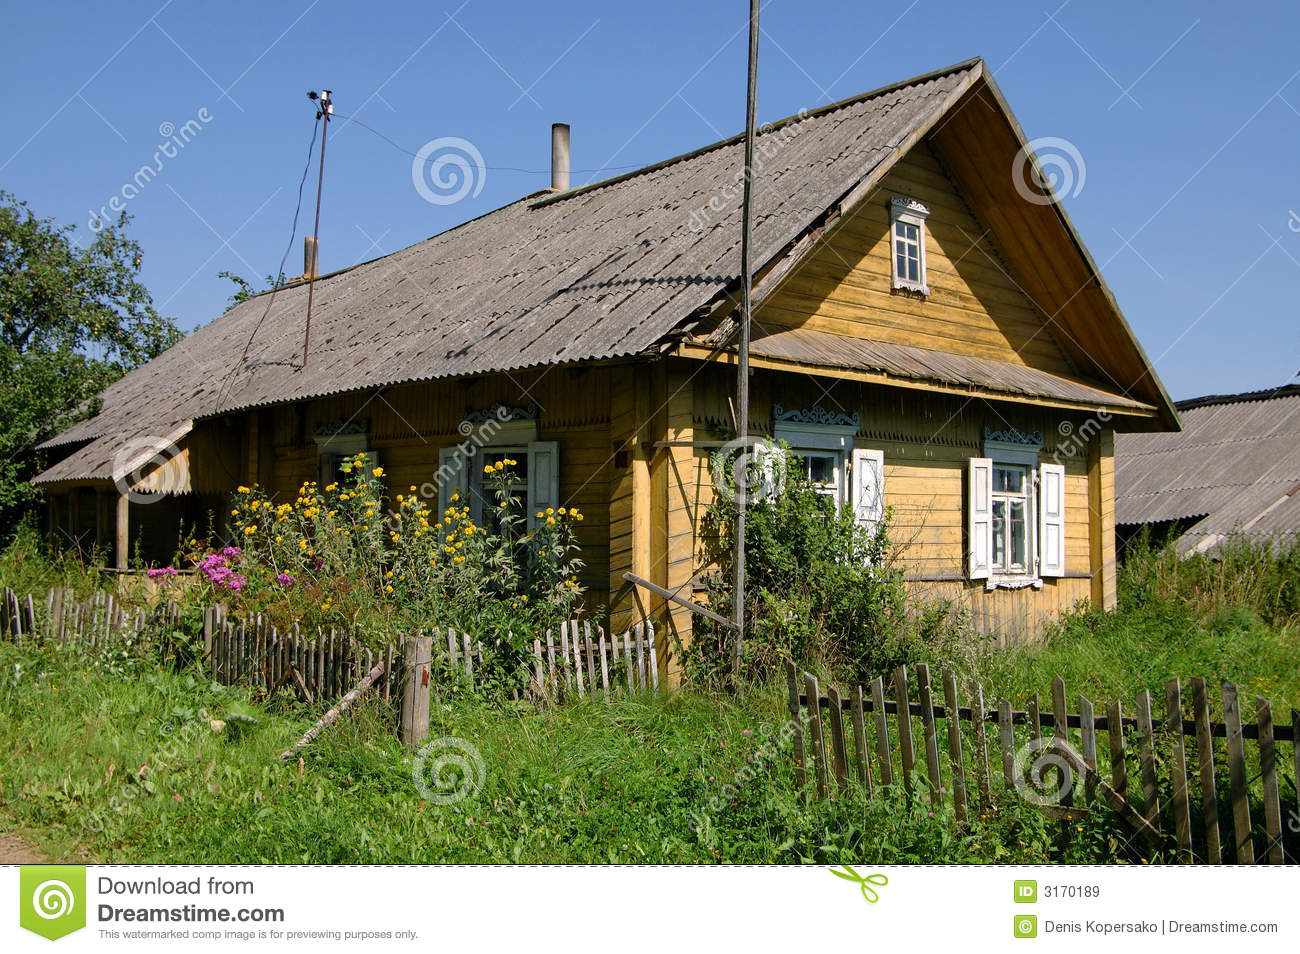 Country house royalty free stock images image 3170189 for Country house online